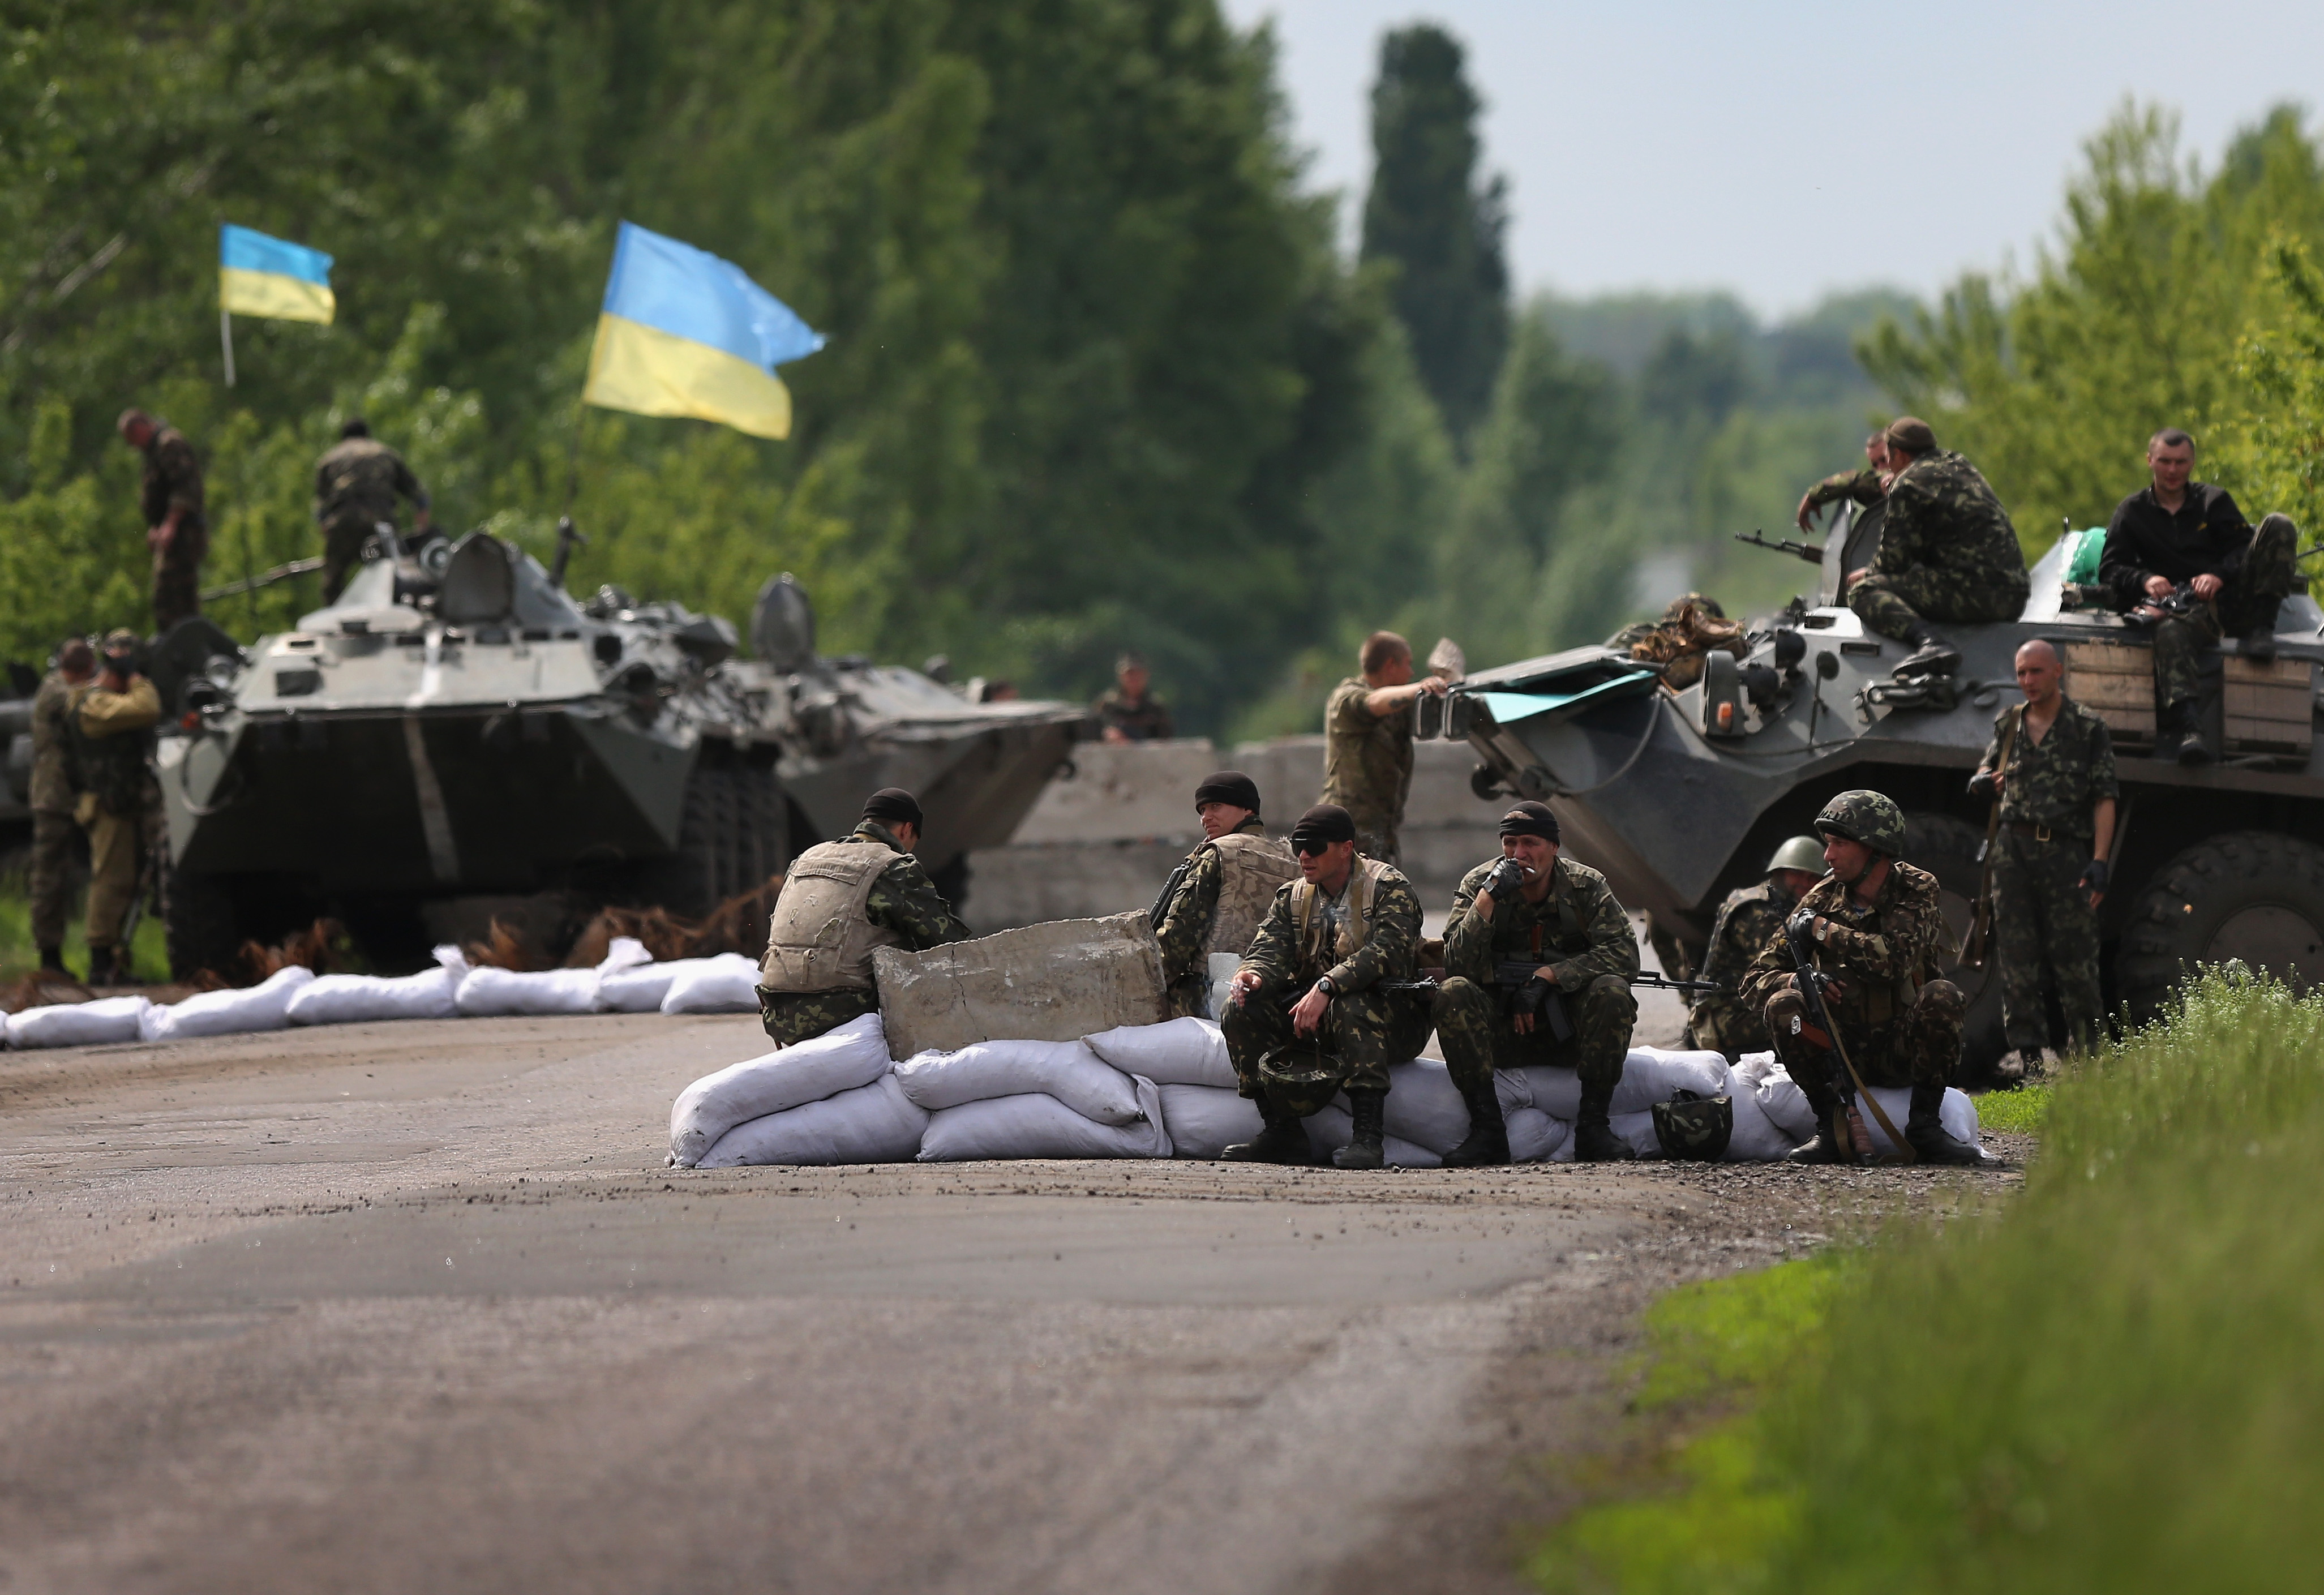 Ukranian military soldiers man a highway checkpoint on May 13, 2014 near Slovyansk, Ukraine. At least 6 Ukranian soldiers were killed and more were reportedly injured by pro-Russian separatists in the nearby city of Kramatorsk.